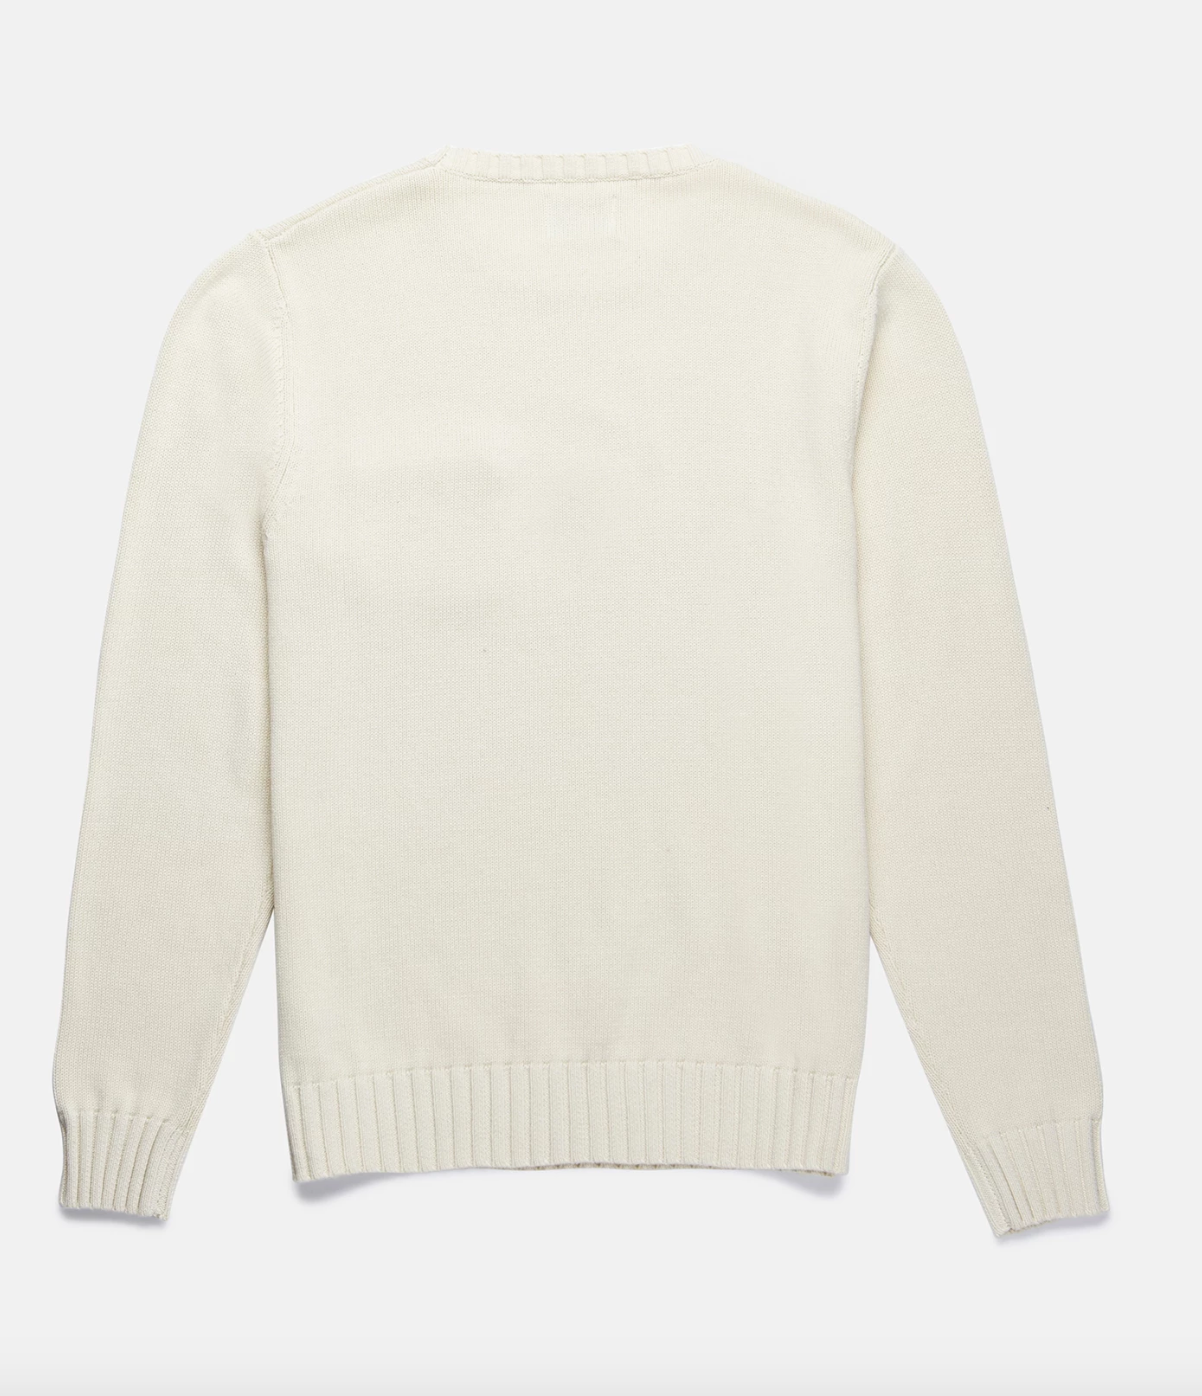 Pocket Knit Long Sleeve Shirt